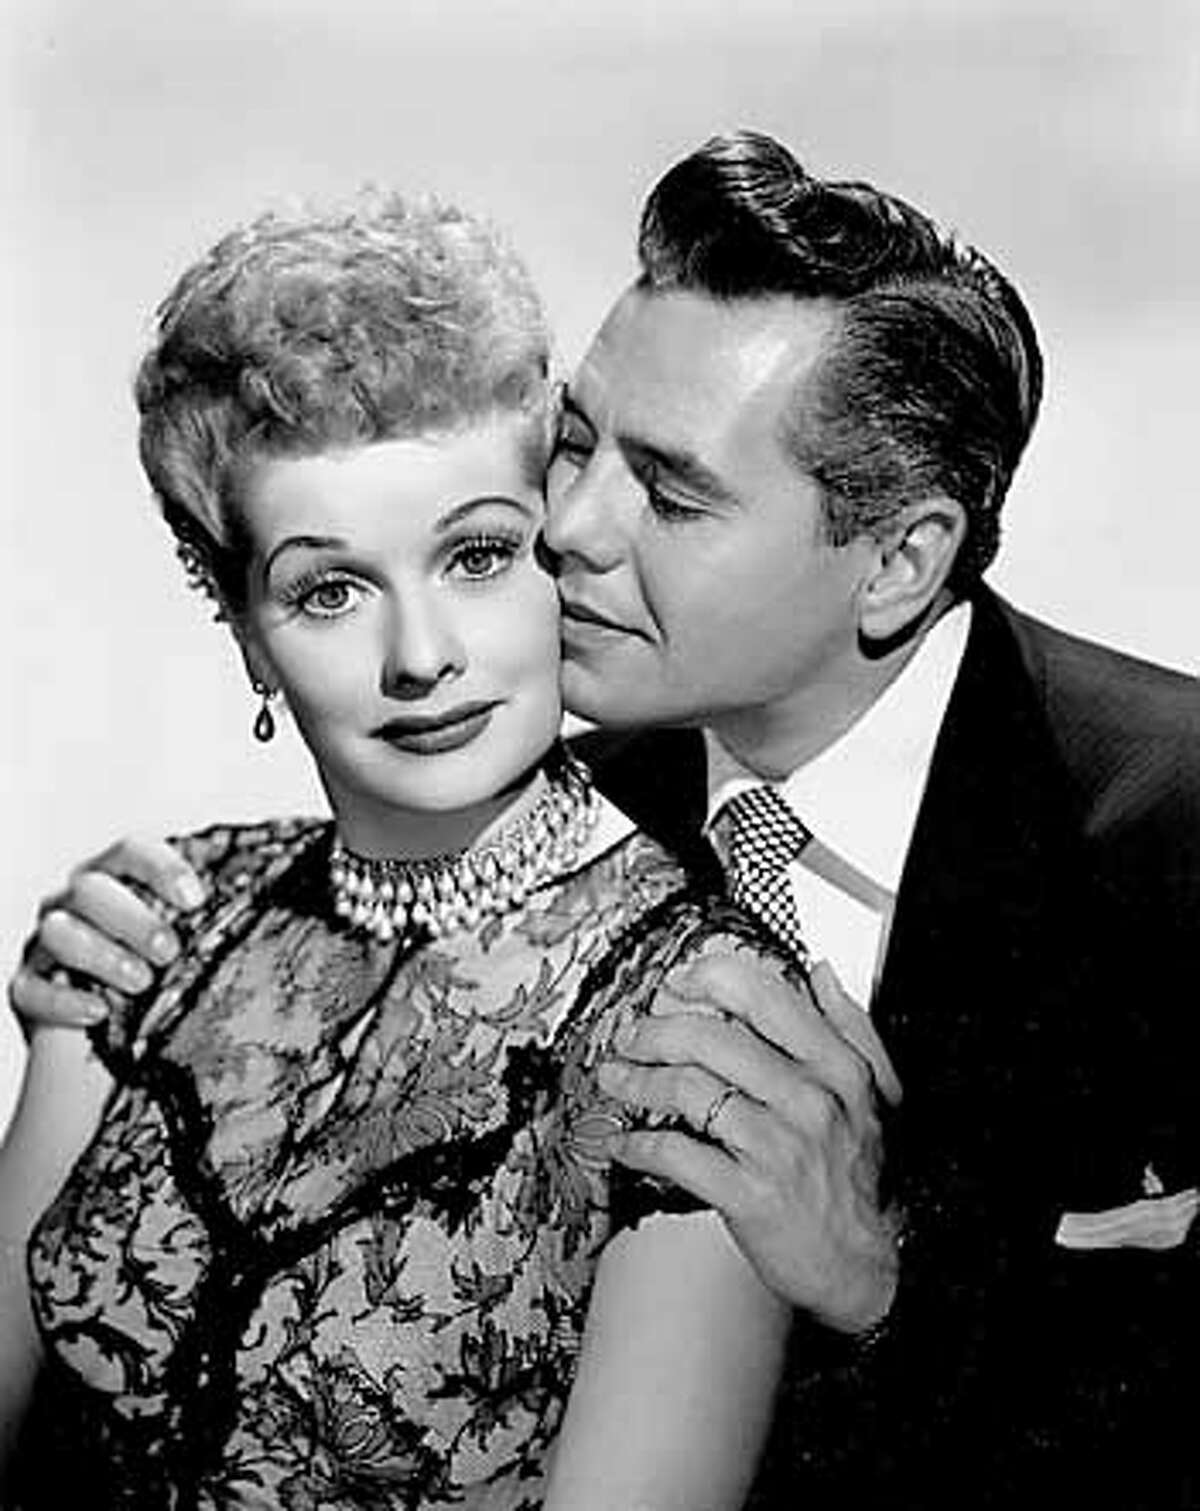 """Lucille Ball and Desi Arnaz starred in """"I Love Lucy"""". Stars and fans will celebrate television's most popular and groundbreaking television show on I LOVE LUCY'S 50TH ANNIVERSARY SPECIAL, a new entertainment presentation to be broadcast Sunday, Nov. 11 (9:00-11:00 PM, ET/PT) on the CBS Television Network, the home of the original series. Photo: CBS Photo Archive �2001 CBS Worldwide Inc. All Rights Reserved. This image is released for editorial use only in conjunction with I LOVE LUCY'S 50TH ANNIVERSARY SPECIAL. It may not be duplicated, leased, sold or otherwise distributed. Editorial permissions are revoked after November 12, 2001. For any questions regarding usage, please call the CBS Photo Archive at 212/975-4475."""